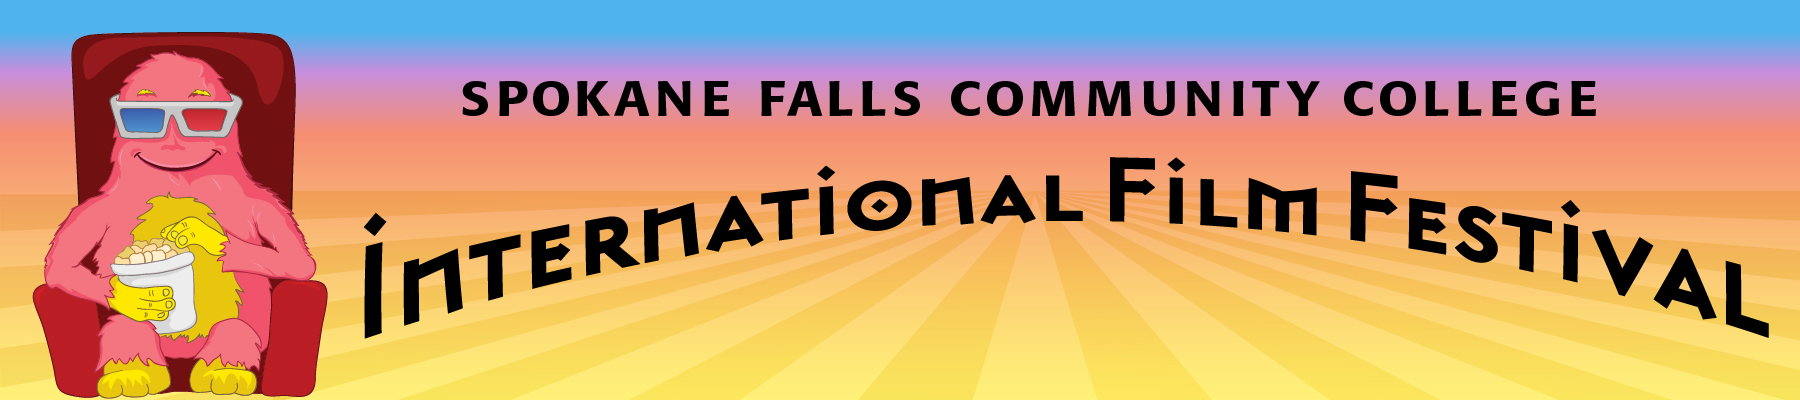 Spokane Falls Community College International Film Festival